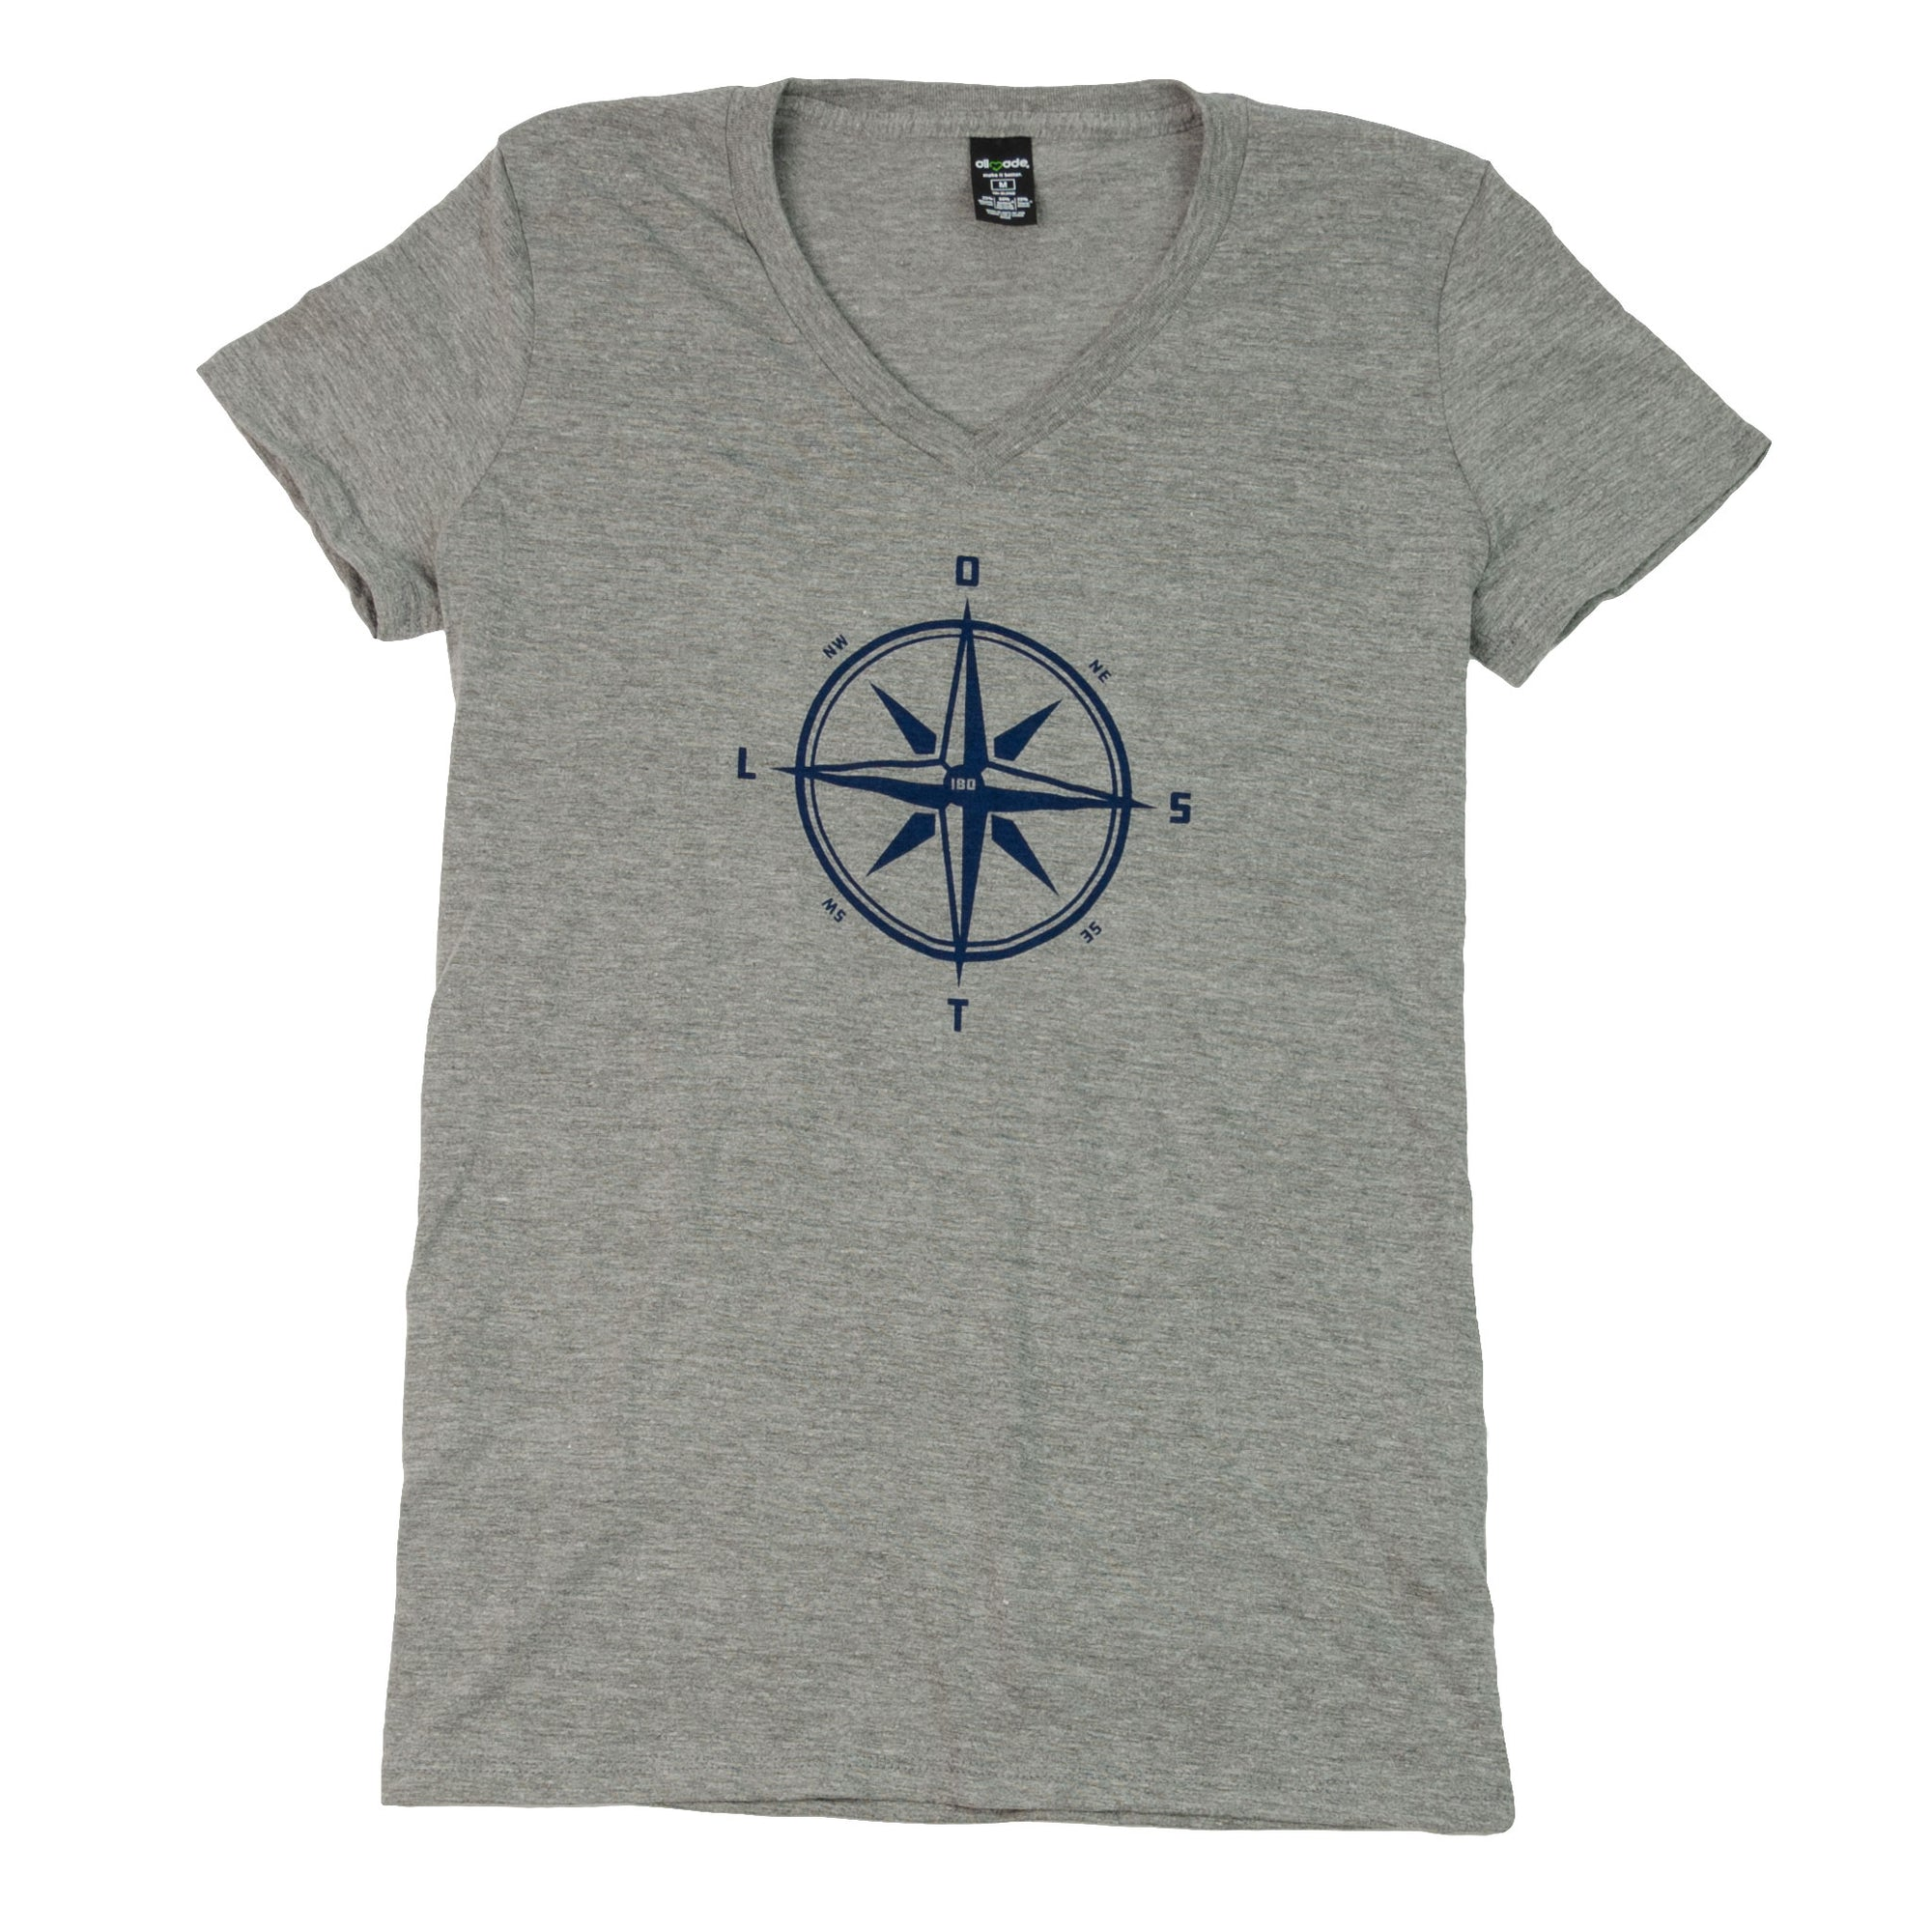 Women's LOST Compass T-Shirt